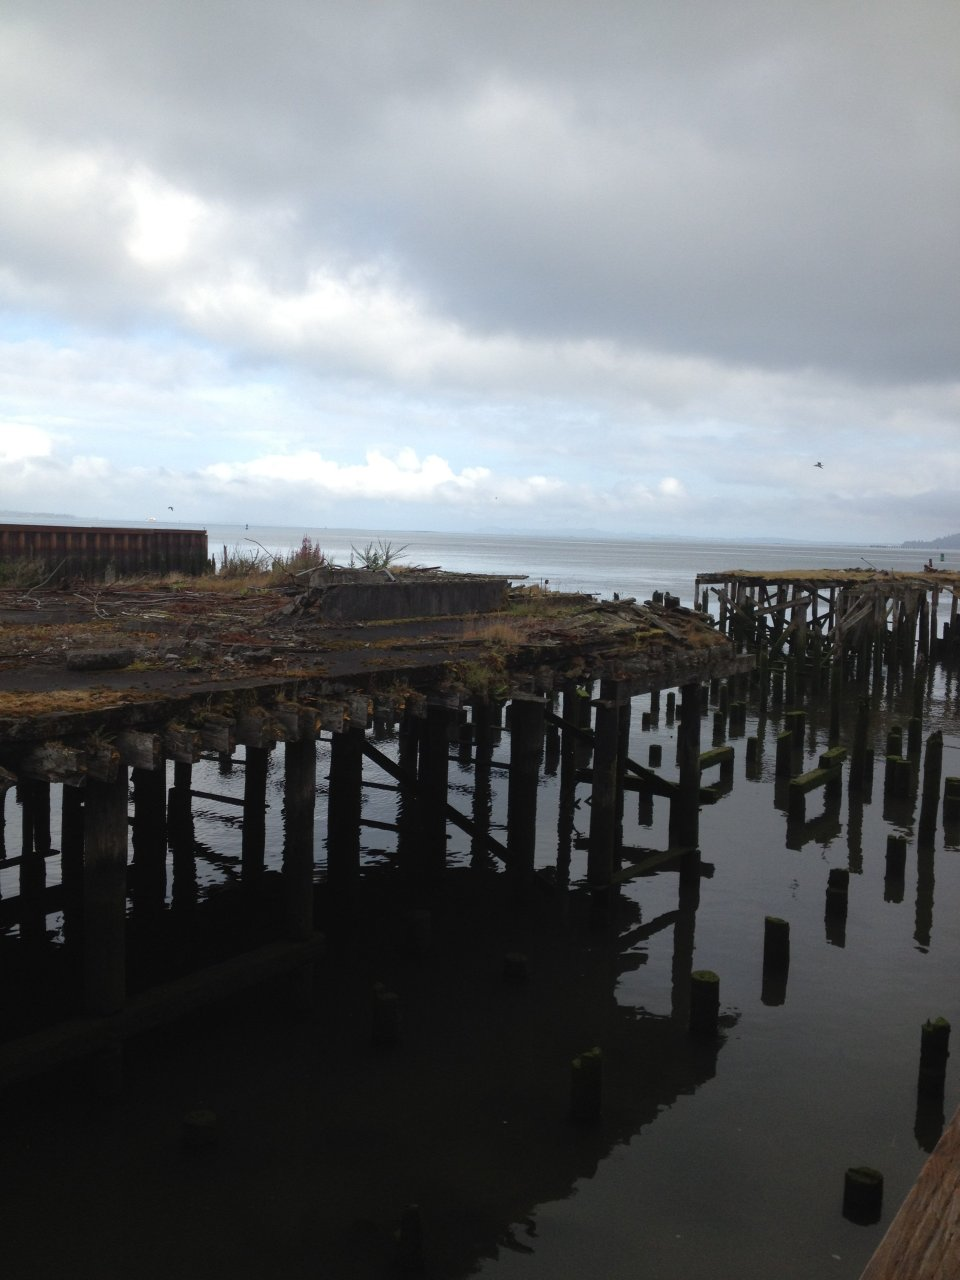 Dock and Pilings